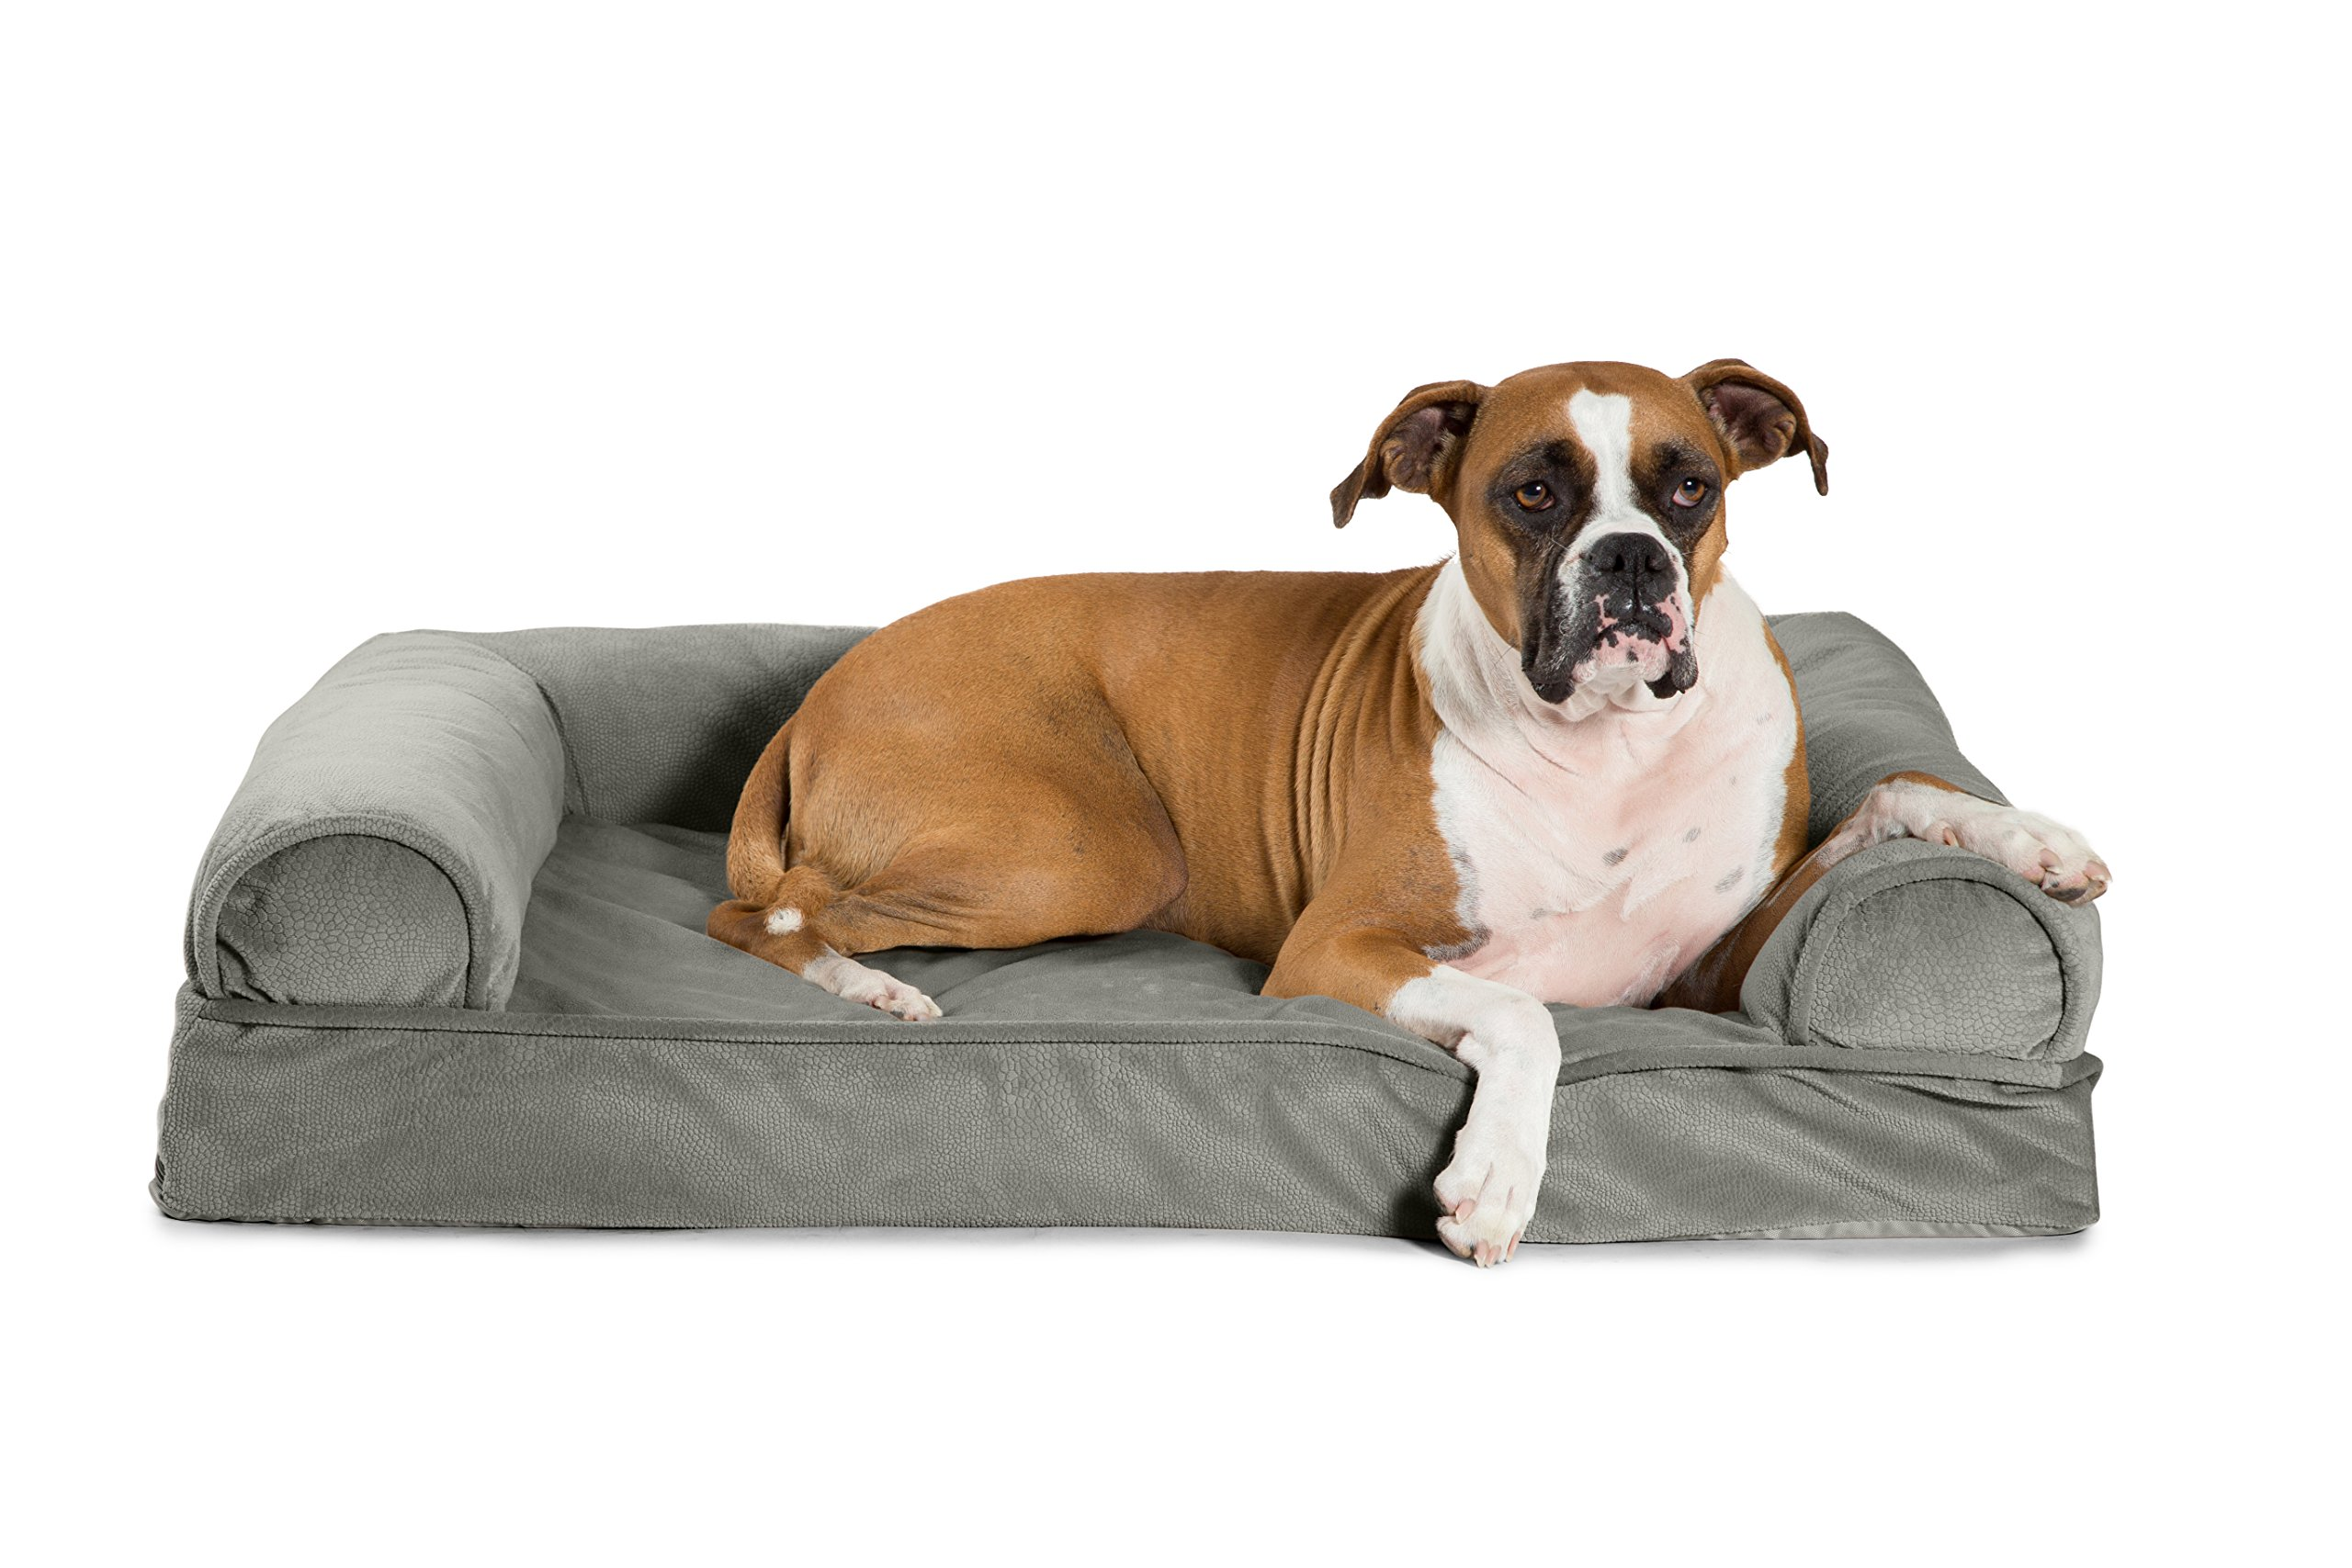 Best Friends by Sheri Orthopedic Joint Relief Bolster Sofa - Luxury Dog Bed with CertiPUR High-Density USA Foam for Superior Support and Cozy Comfort - Removable Zippered Cover, Machine Washable, Water-Resistant Bottom - For Medium Pets Up to 50lbs, Grey by Best Friends by Sheri